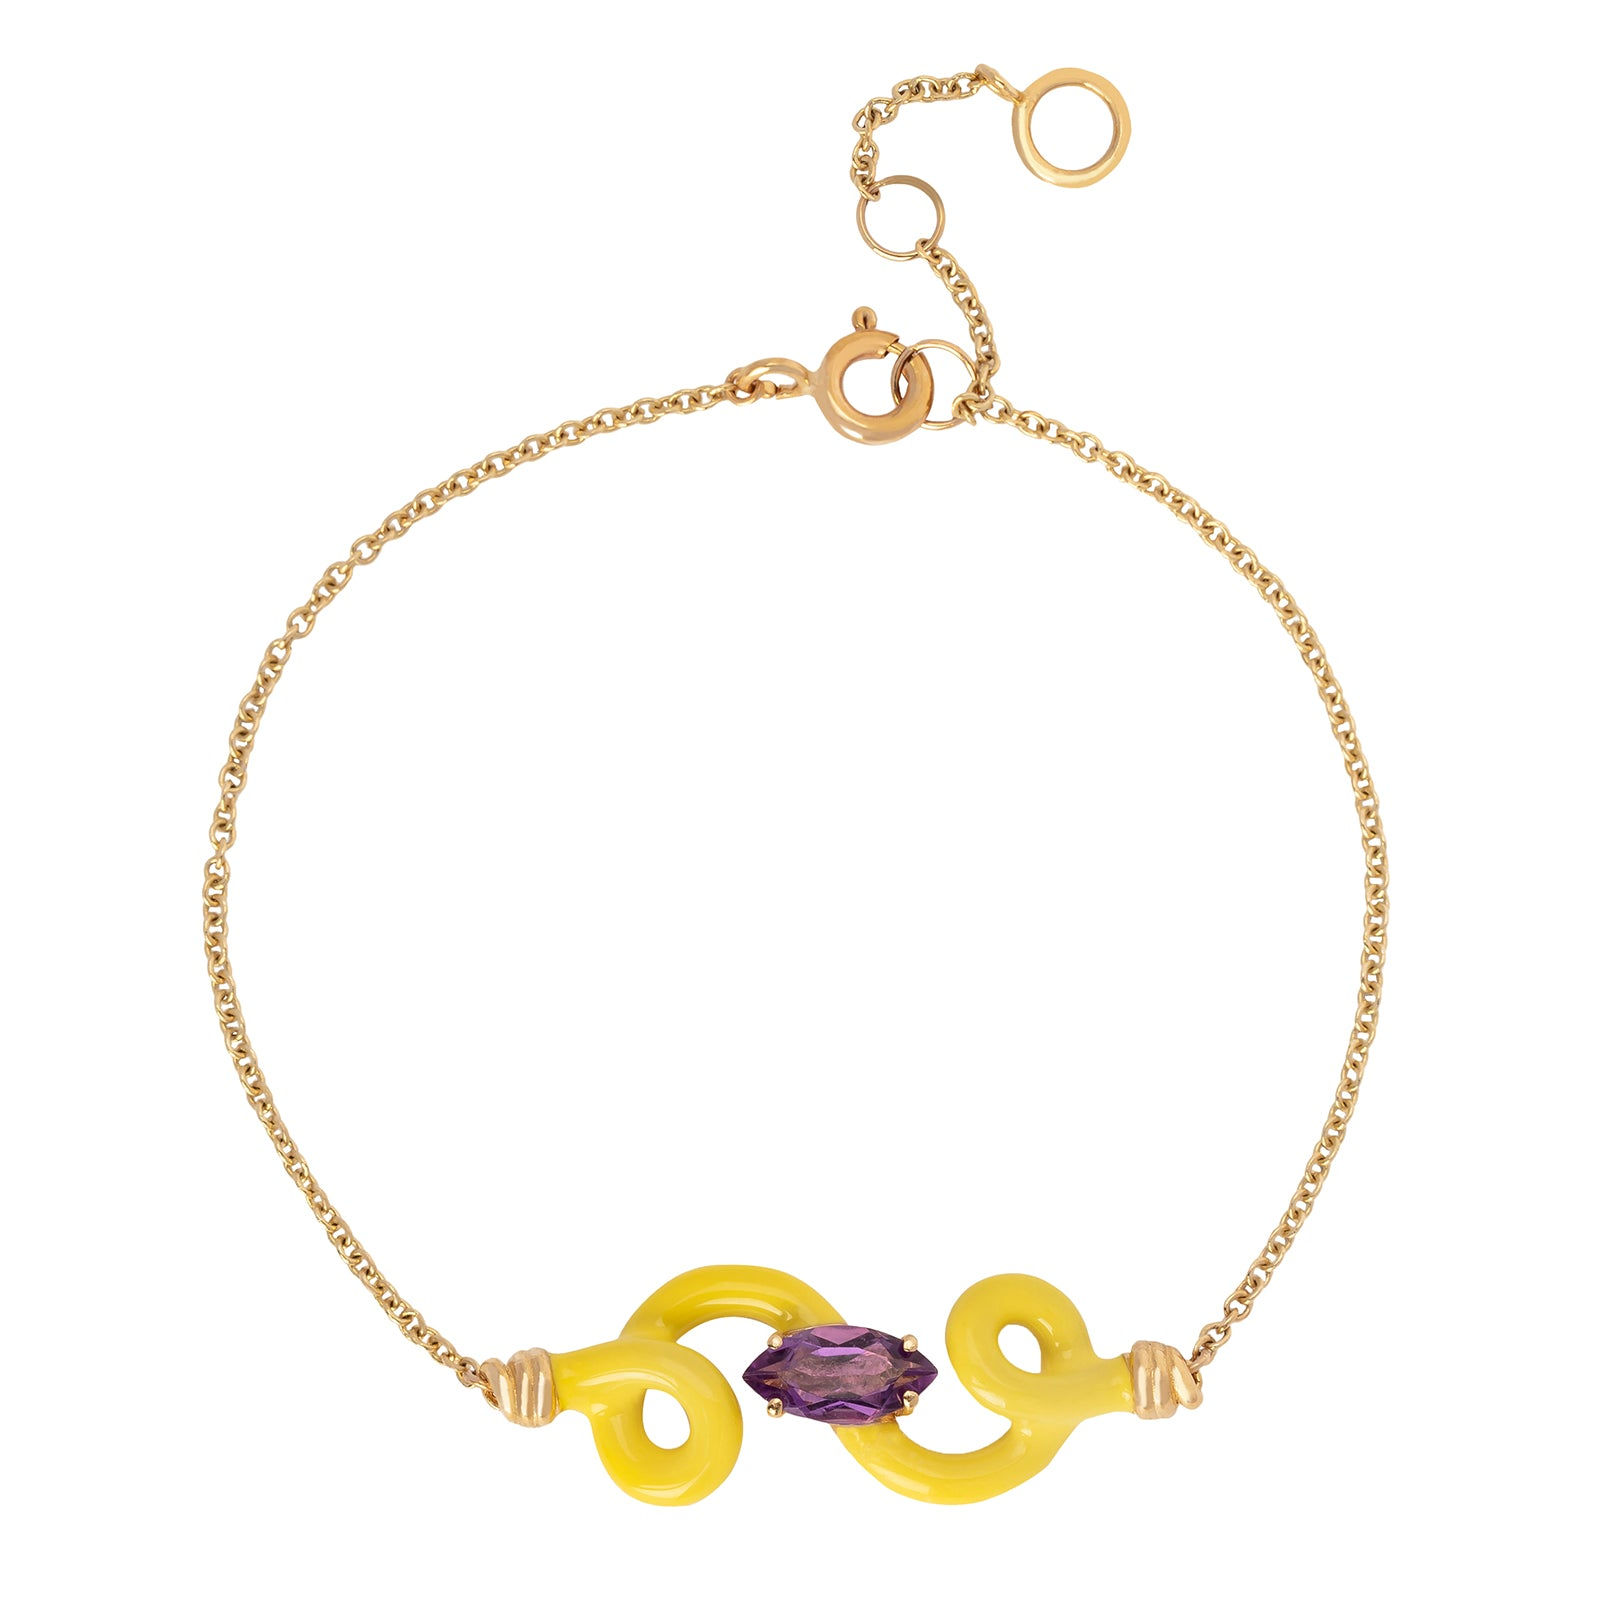 Bea Bongiasca Baby Vine Chain Bracelet - Yellow Enamel - Bracelets - Broken English Jewelry